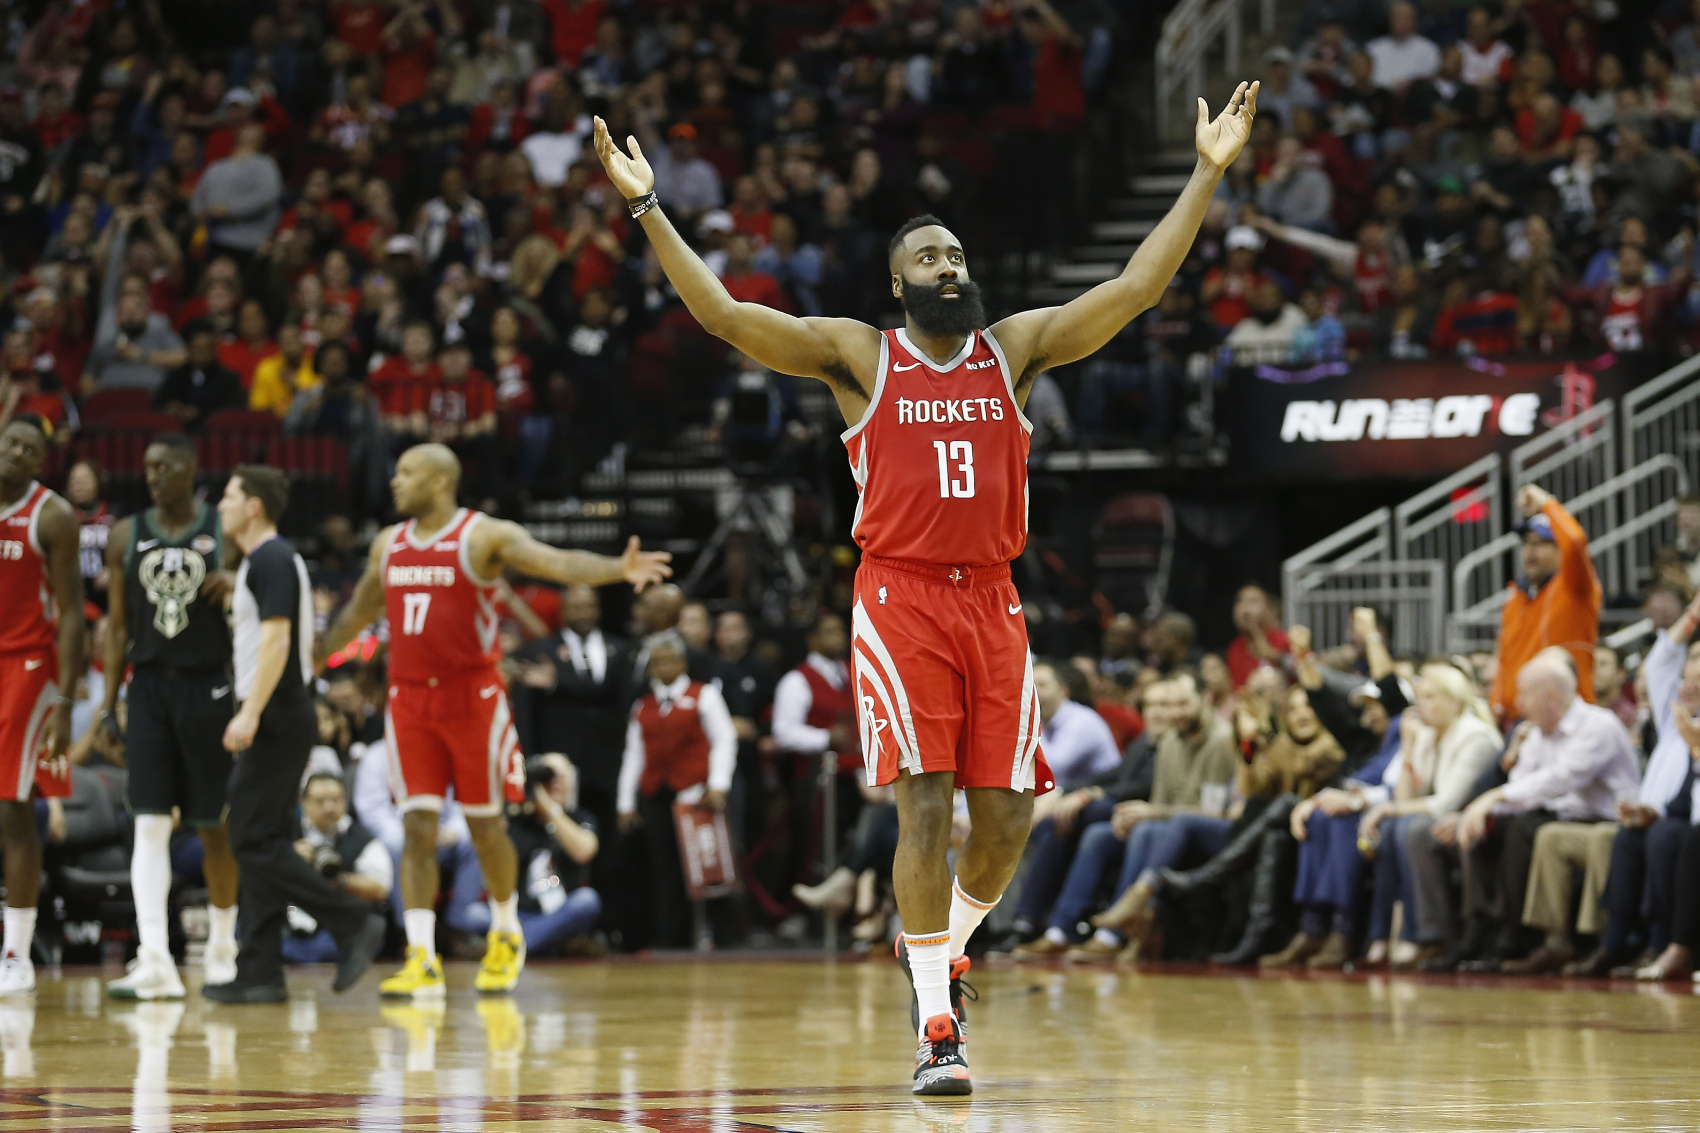 James Harden has become a great scorer with the Houston Rockets. He is actually close to becoming the team's all-time leading scorer.